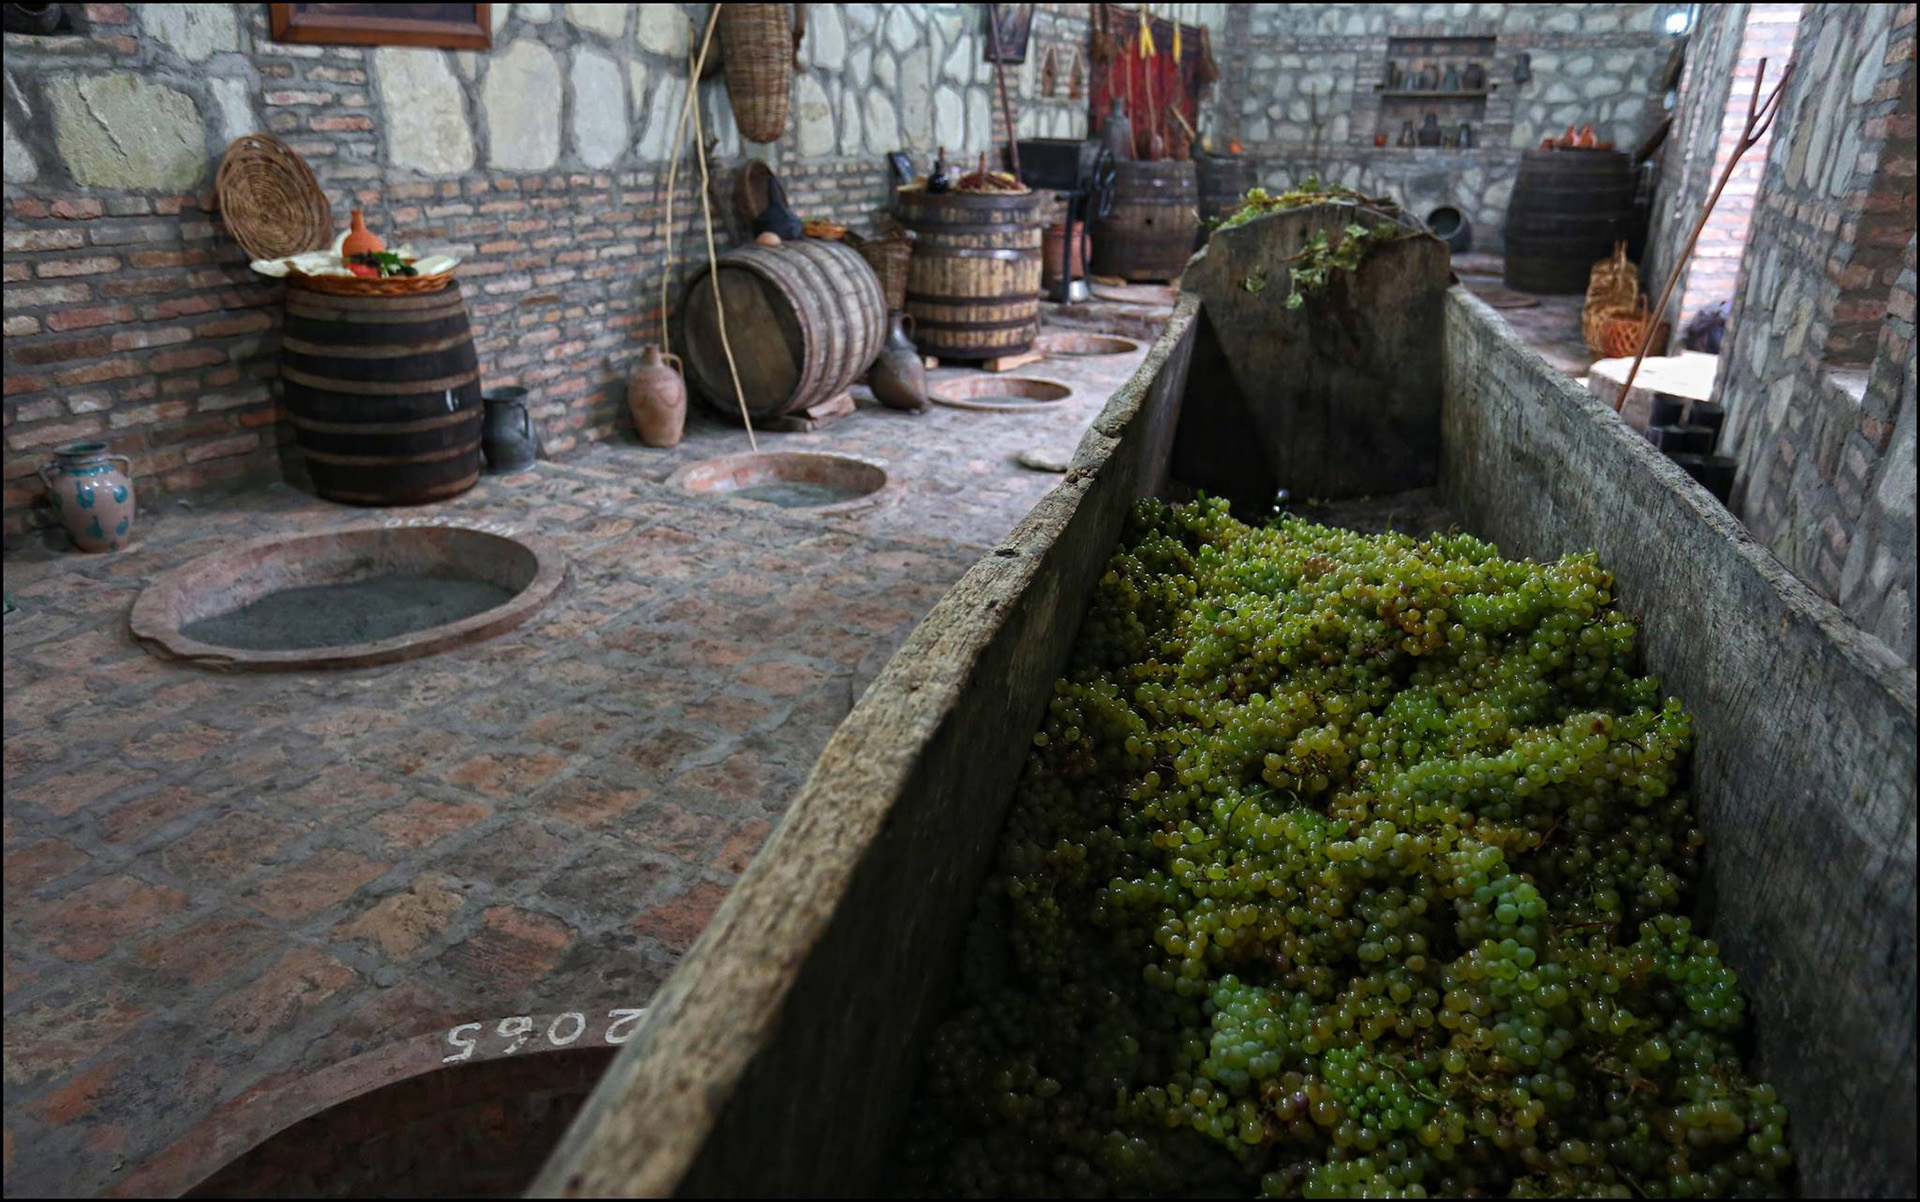 Georgian qvevri fully buried, alongside Rkatsiteli grapes destined for fermentation / Photo courtesy Wines of Georgia